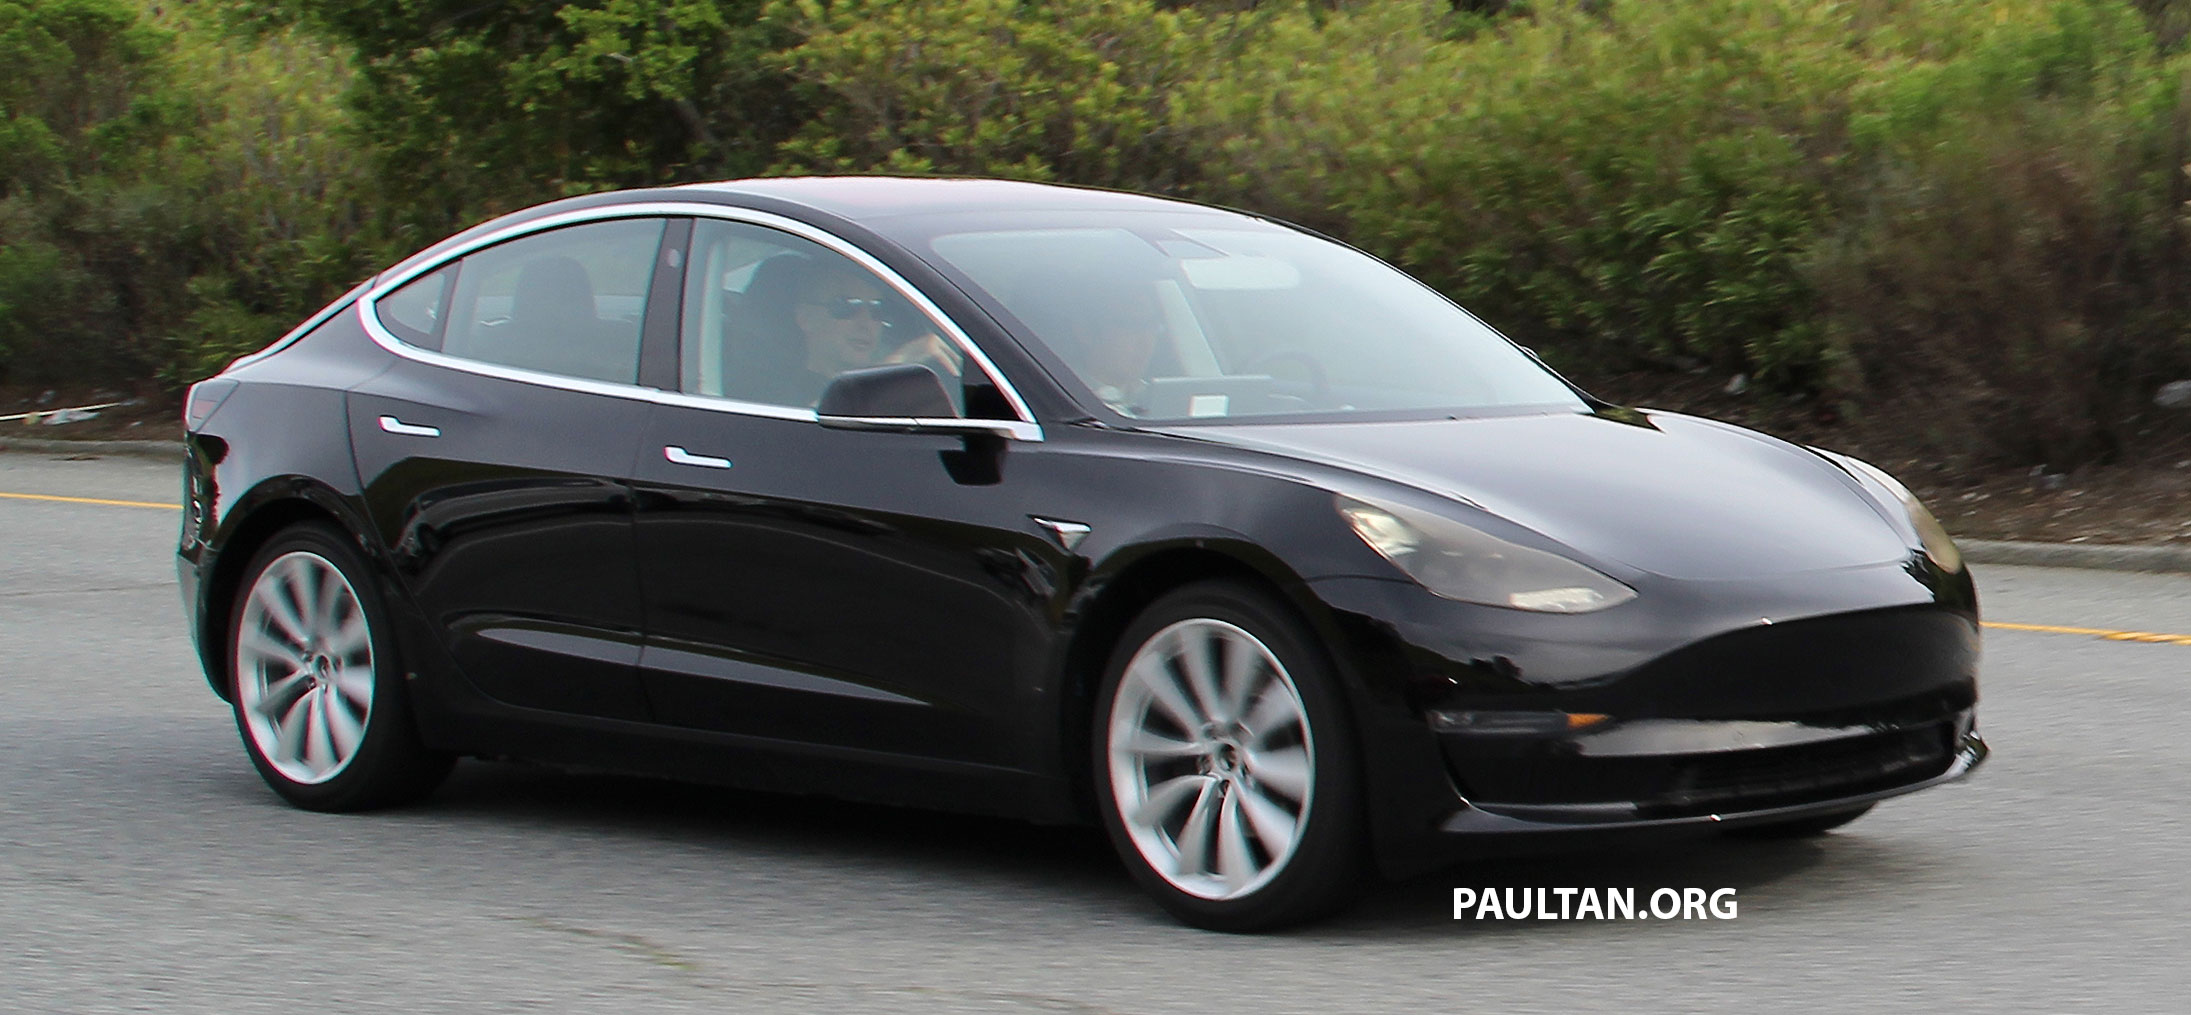 SPIED: Tesla Model 3 spotted testing, interior shown Paul ...